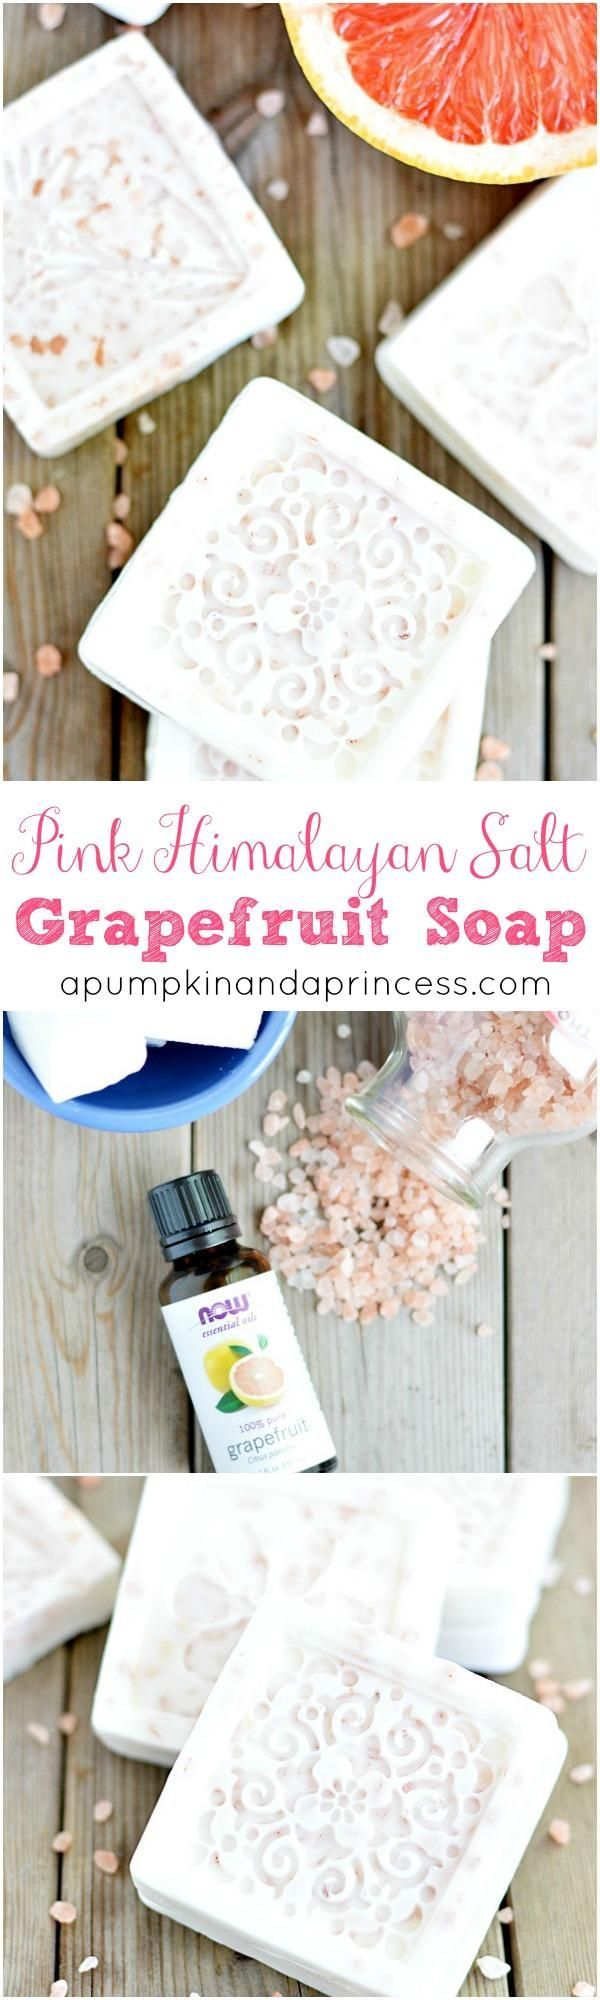 Himalayan Salt Grapefruit Soap Recipe